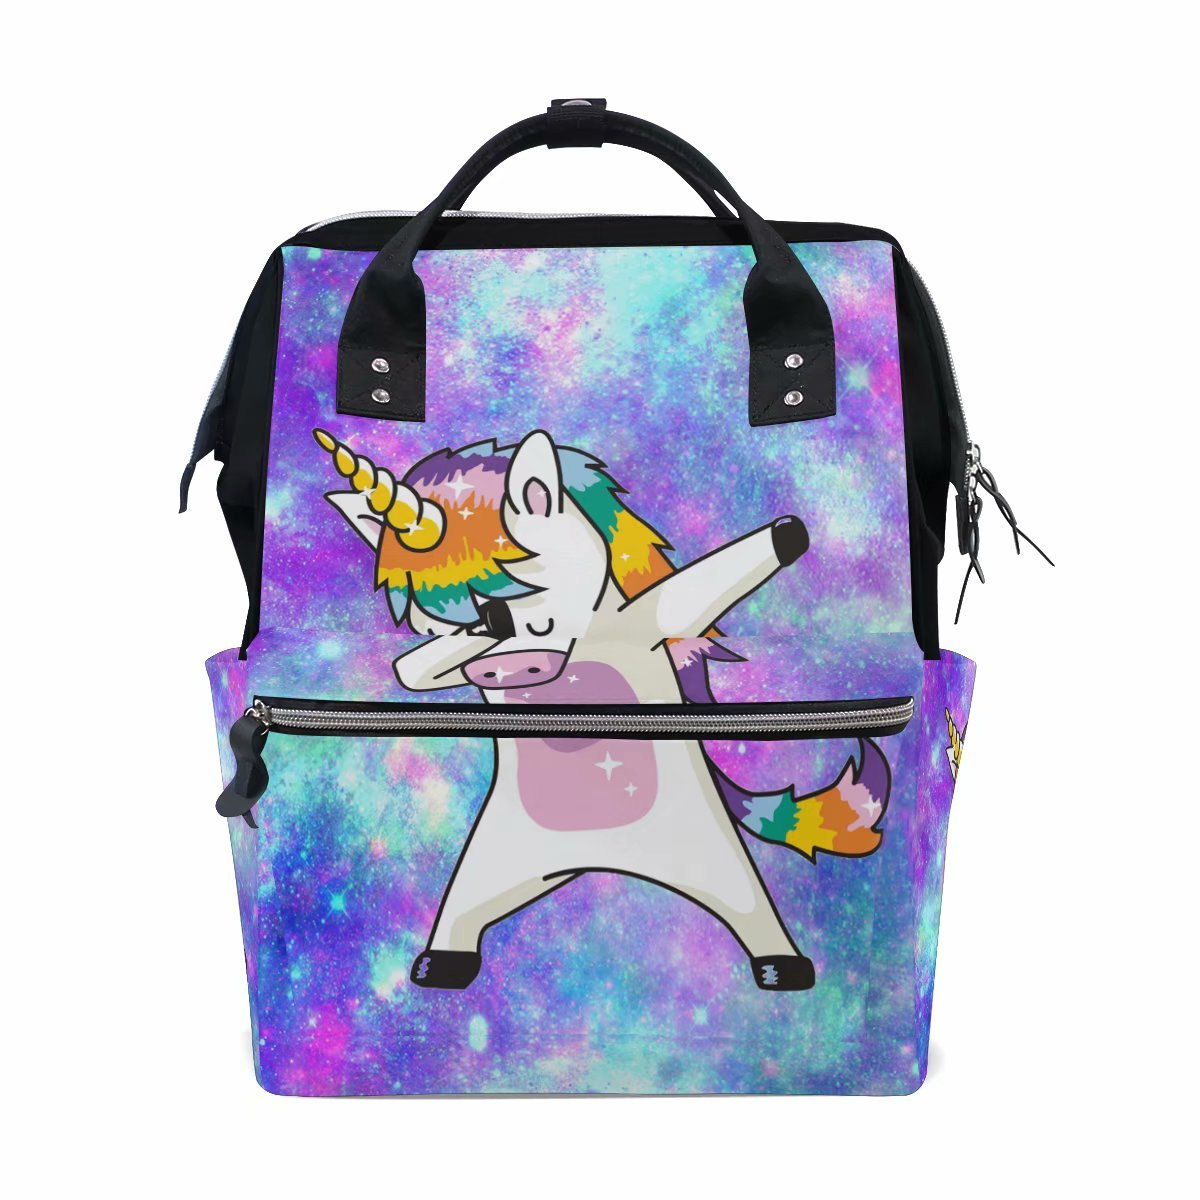 283ae274ea6 Dab Unicorn Backpack for Girls Large Cute School Backpack Galaxy Bookbag  Wide Open Doctor Style Casual Backpacks Canvas 11